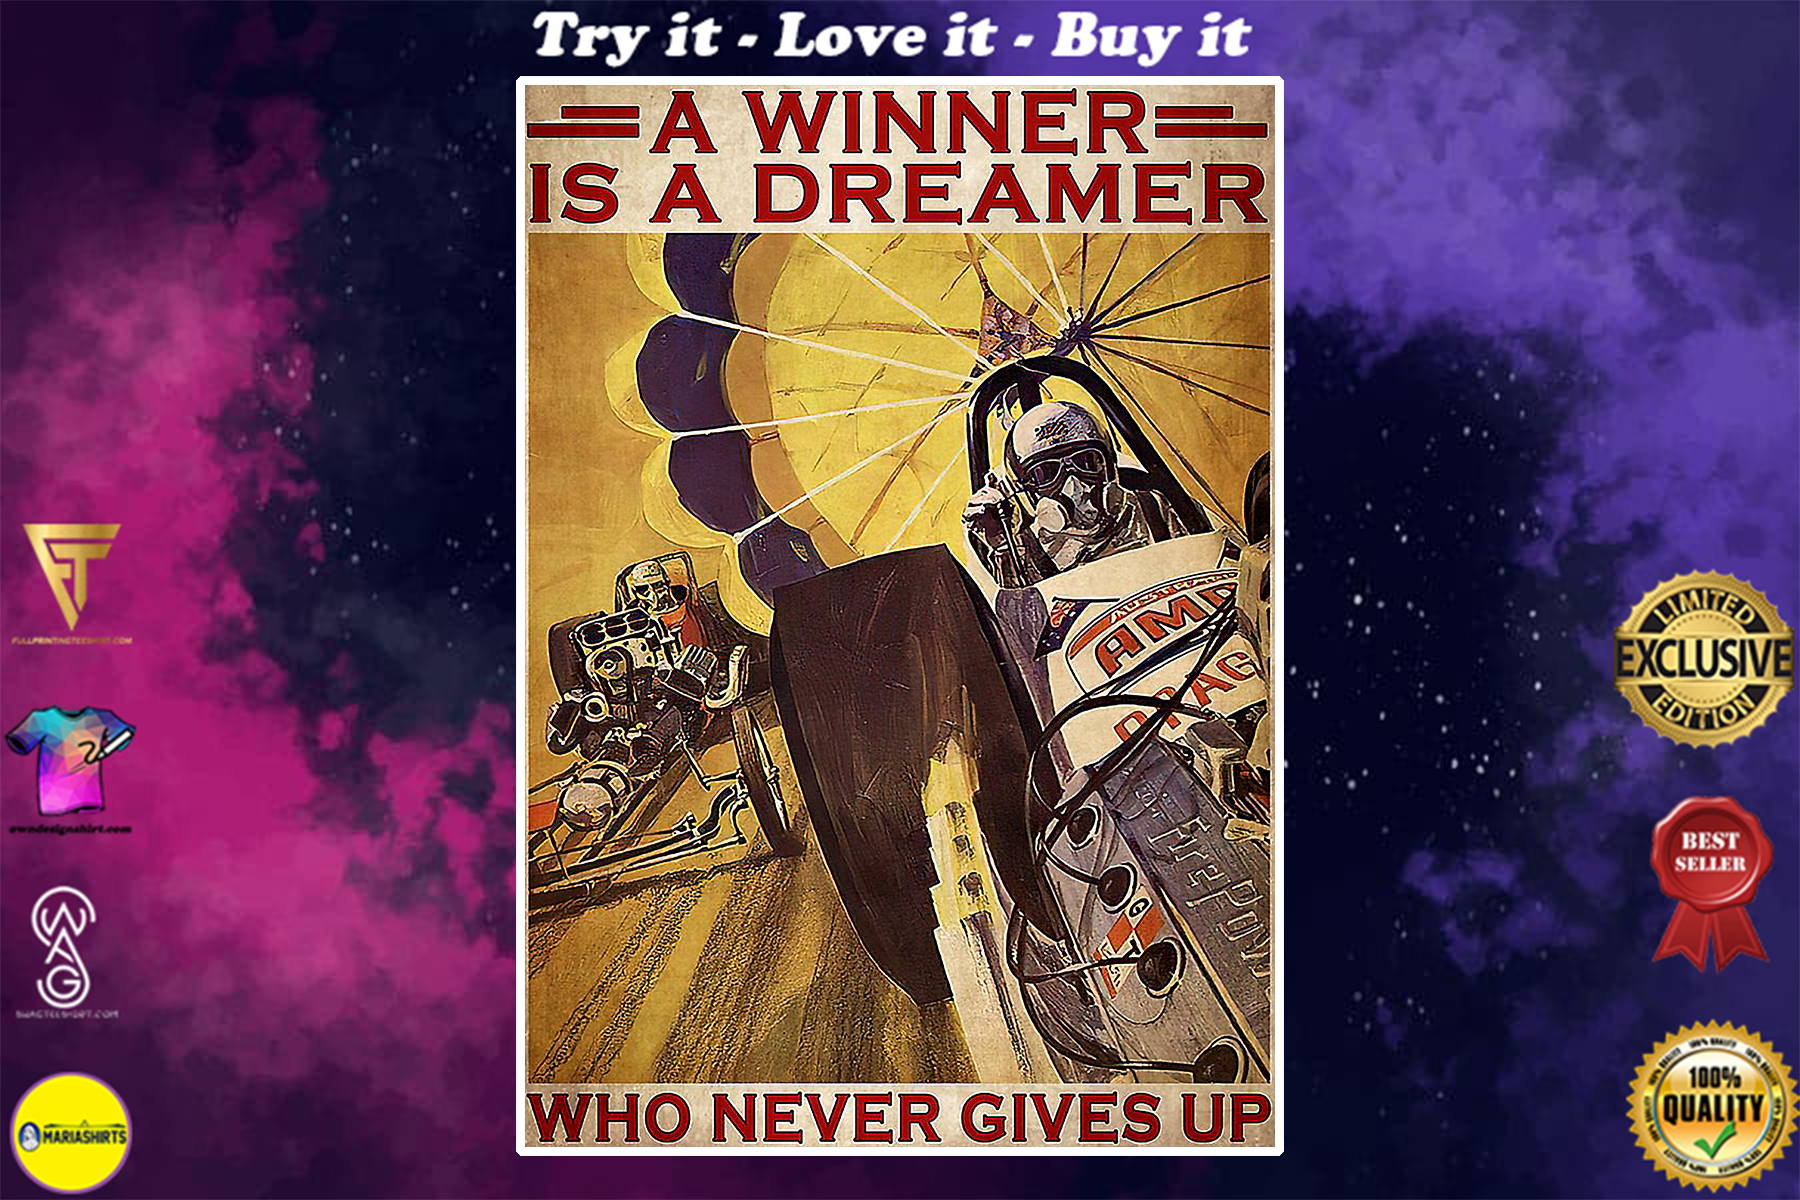 vintage drag racer a winner is a dreamer who never gives up poster